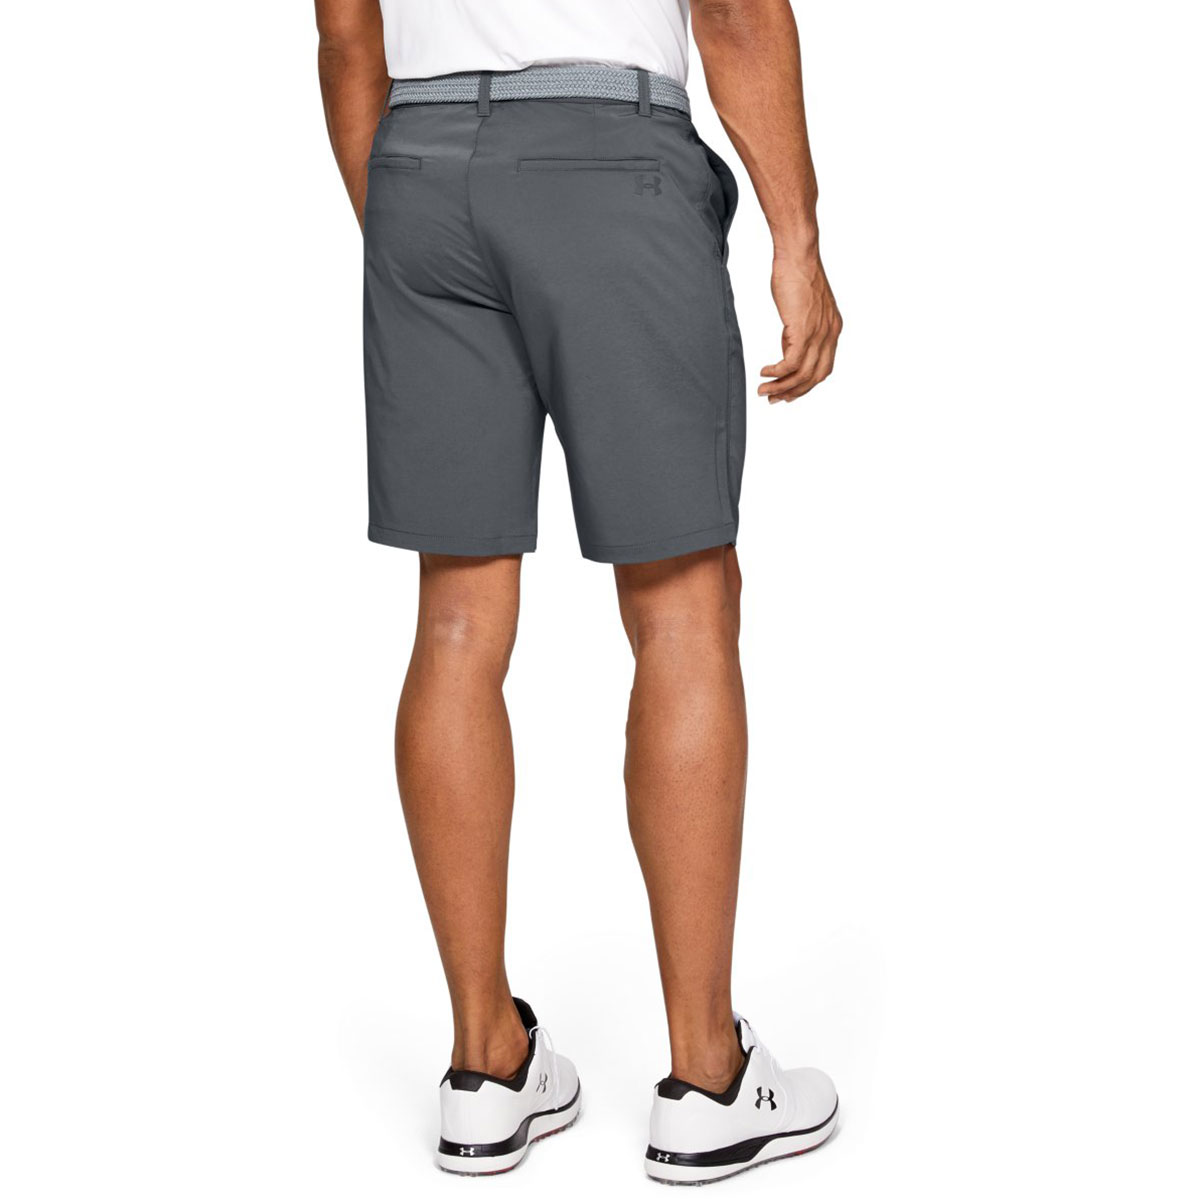 Under-Armour-Mens-EU-Tech-Stretch-Soft-Fitted-Golf-Shorts Indexbild 15